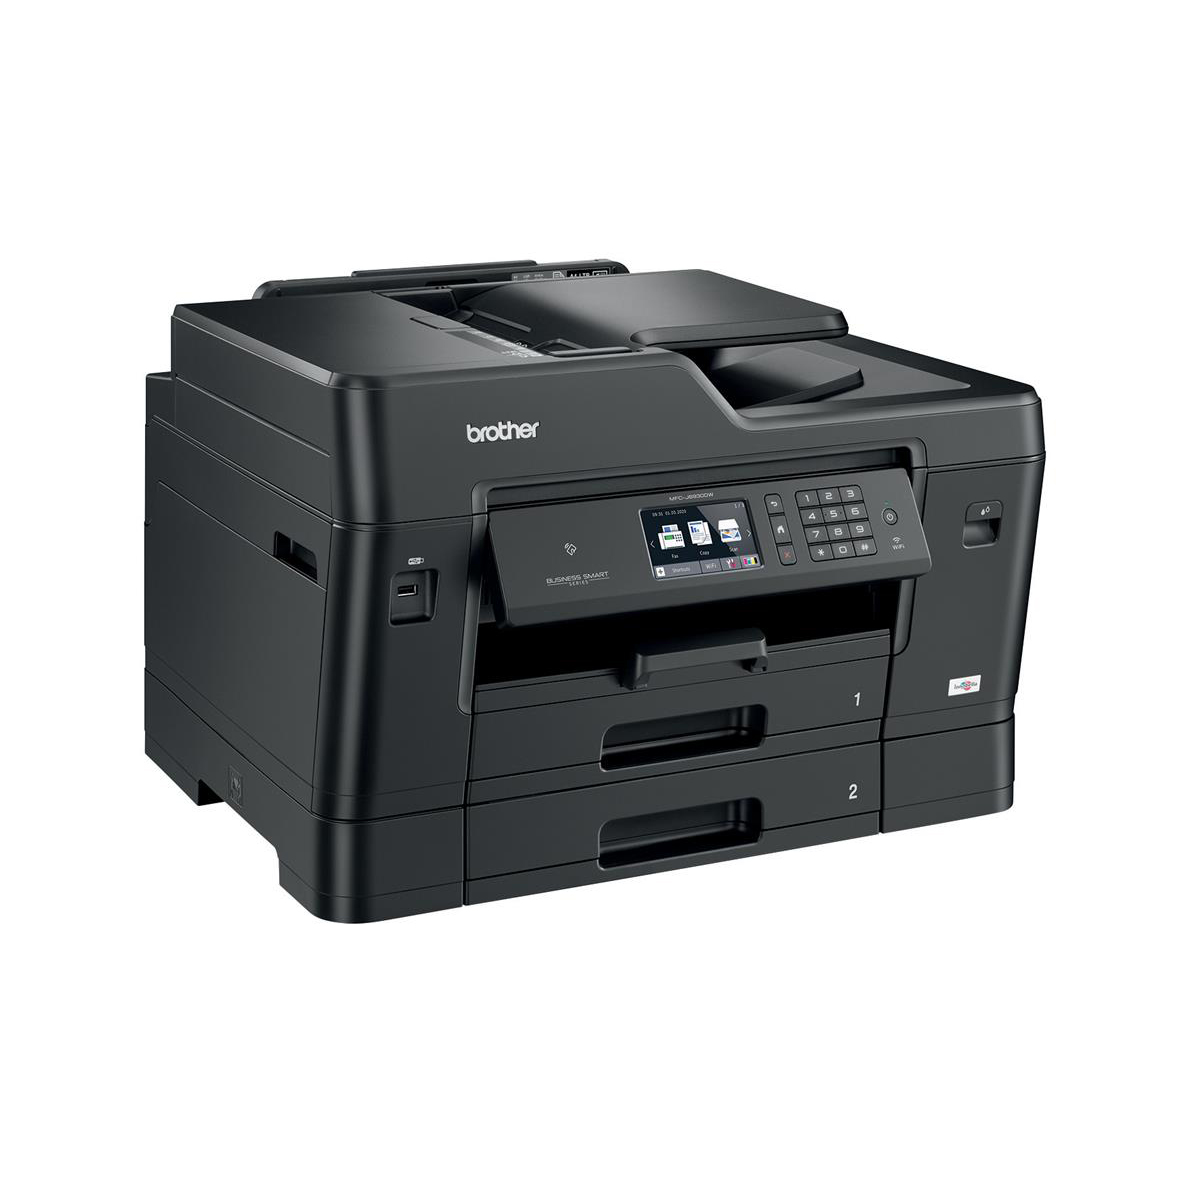 Brother Colour Multifunction A3 Inkjet Printer Ref MFCJ6930DWZU1